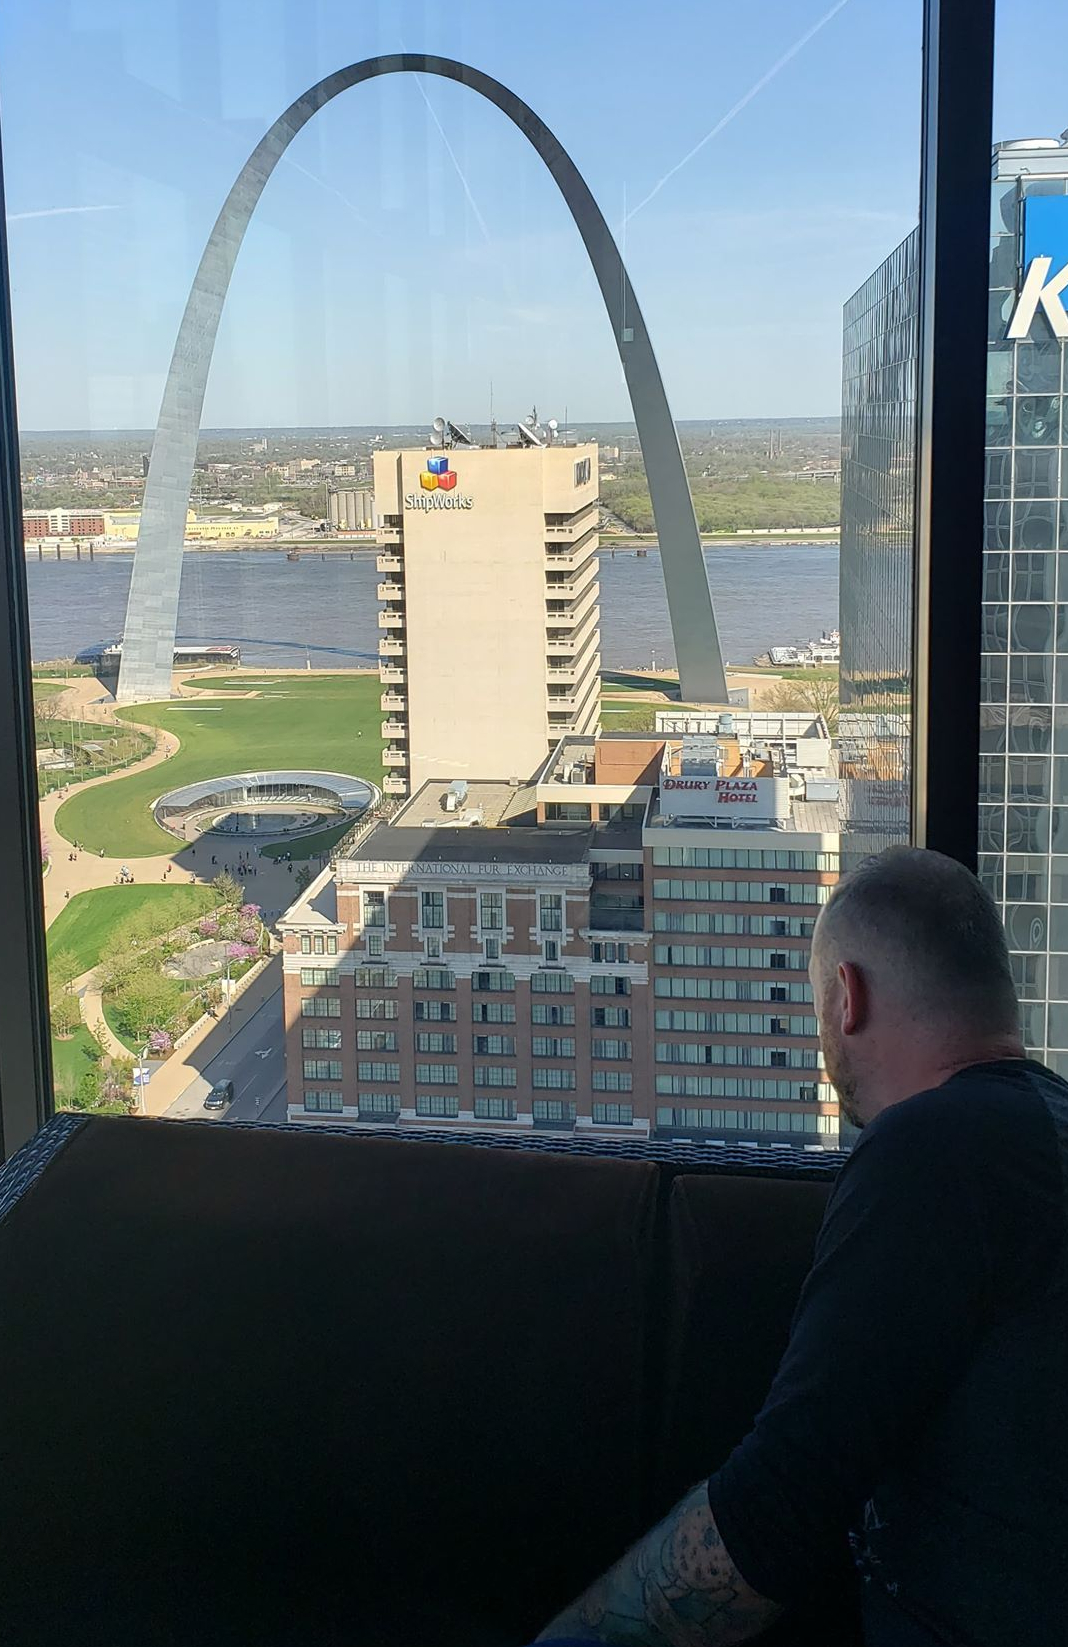 Review: City of StLouis